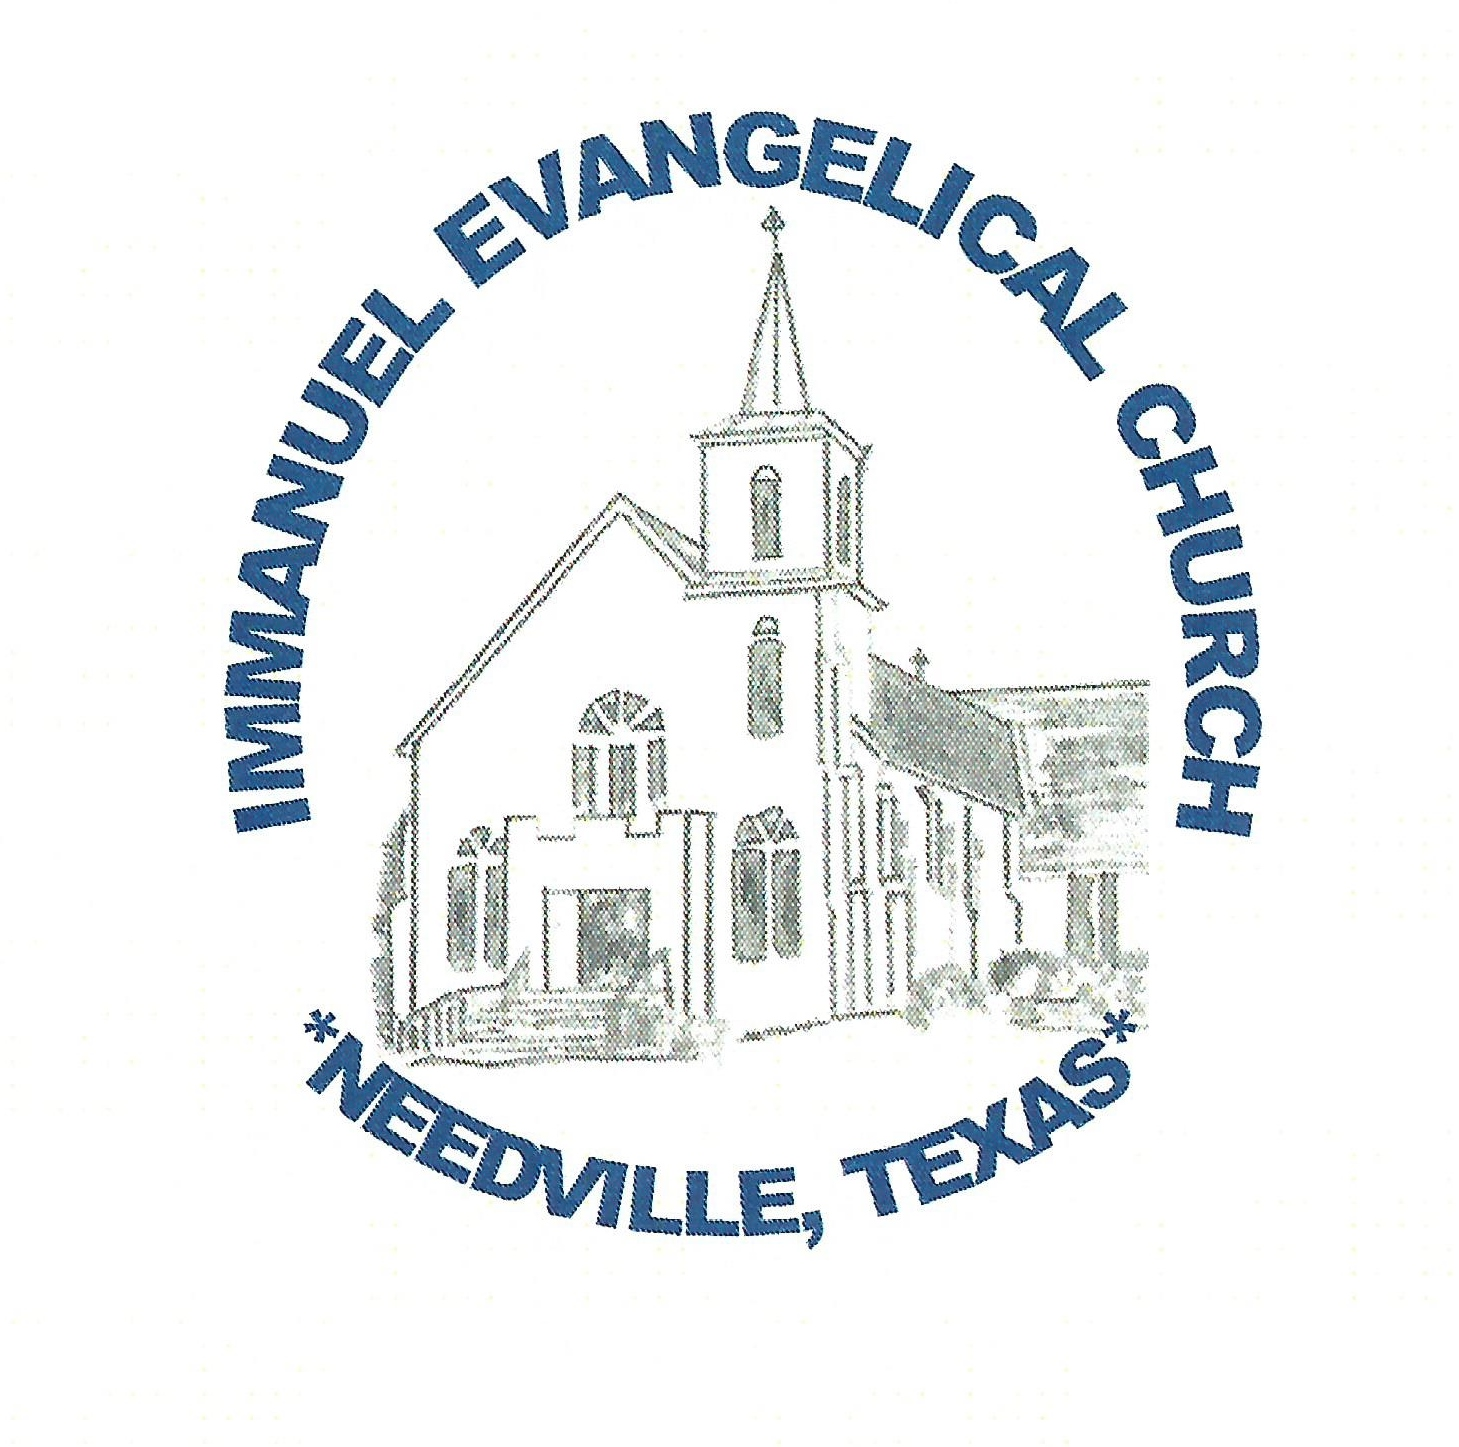 Immanuel Evangelical Church